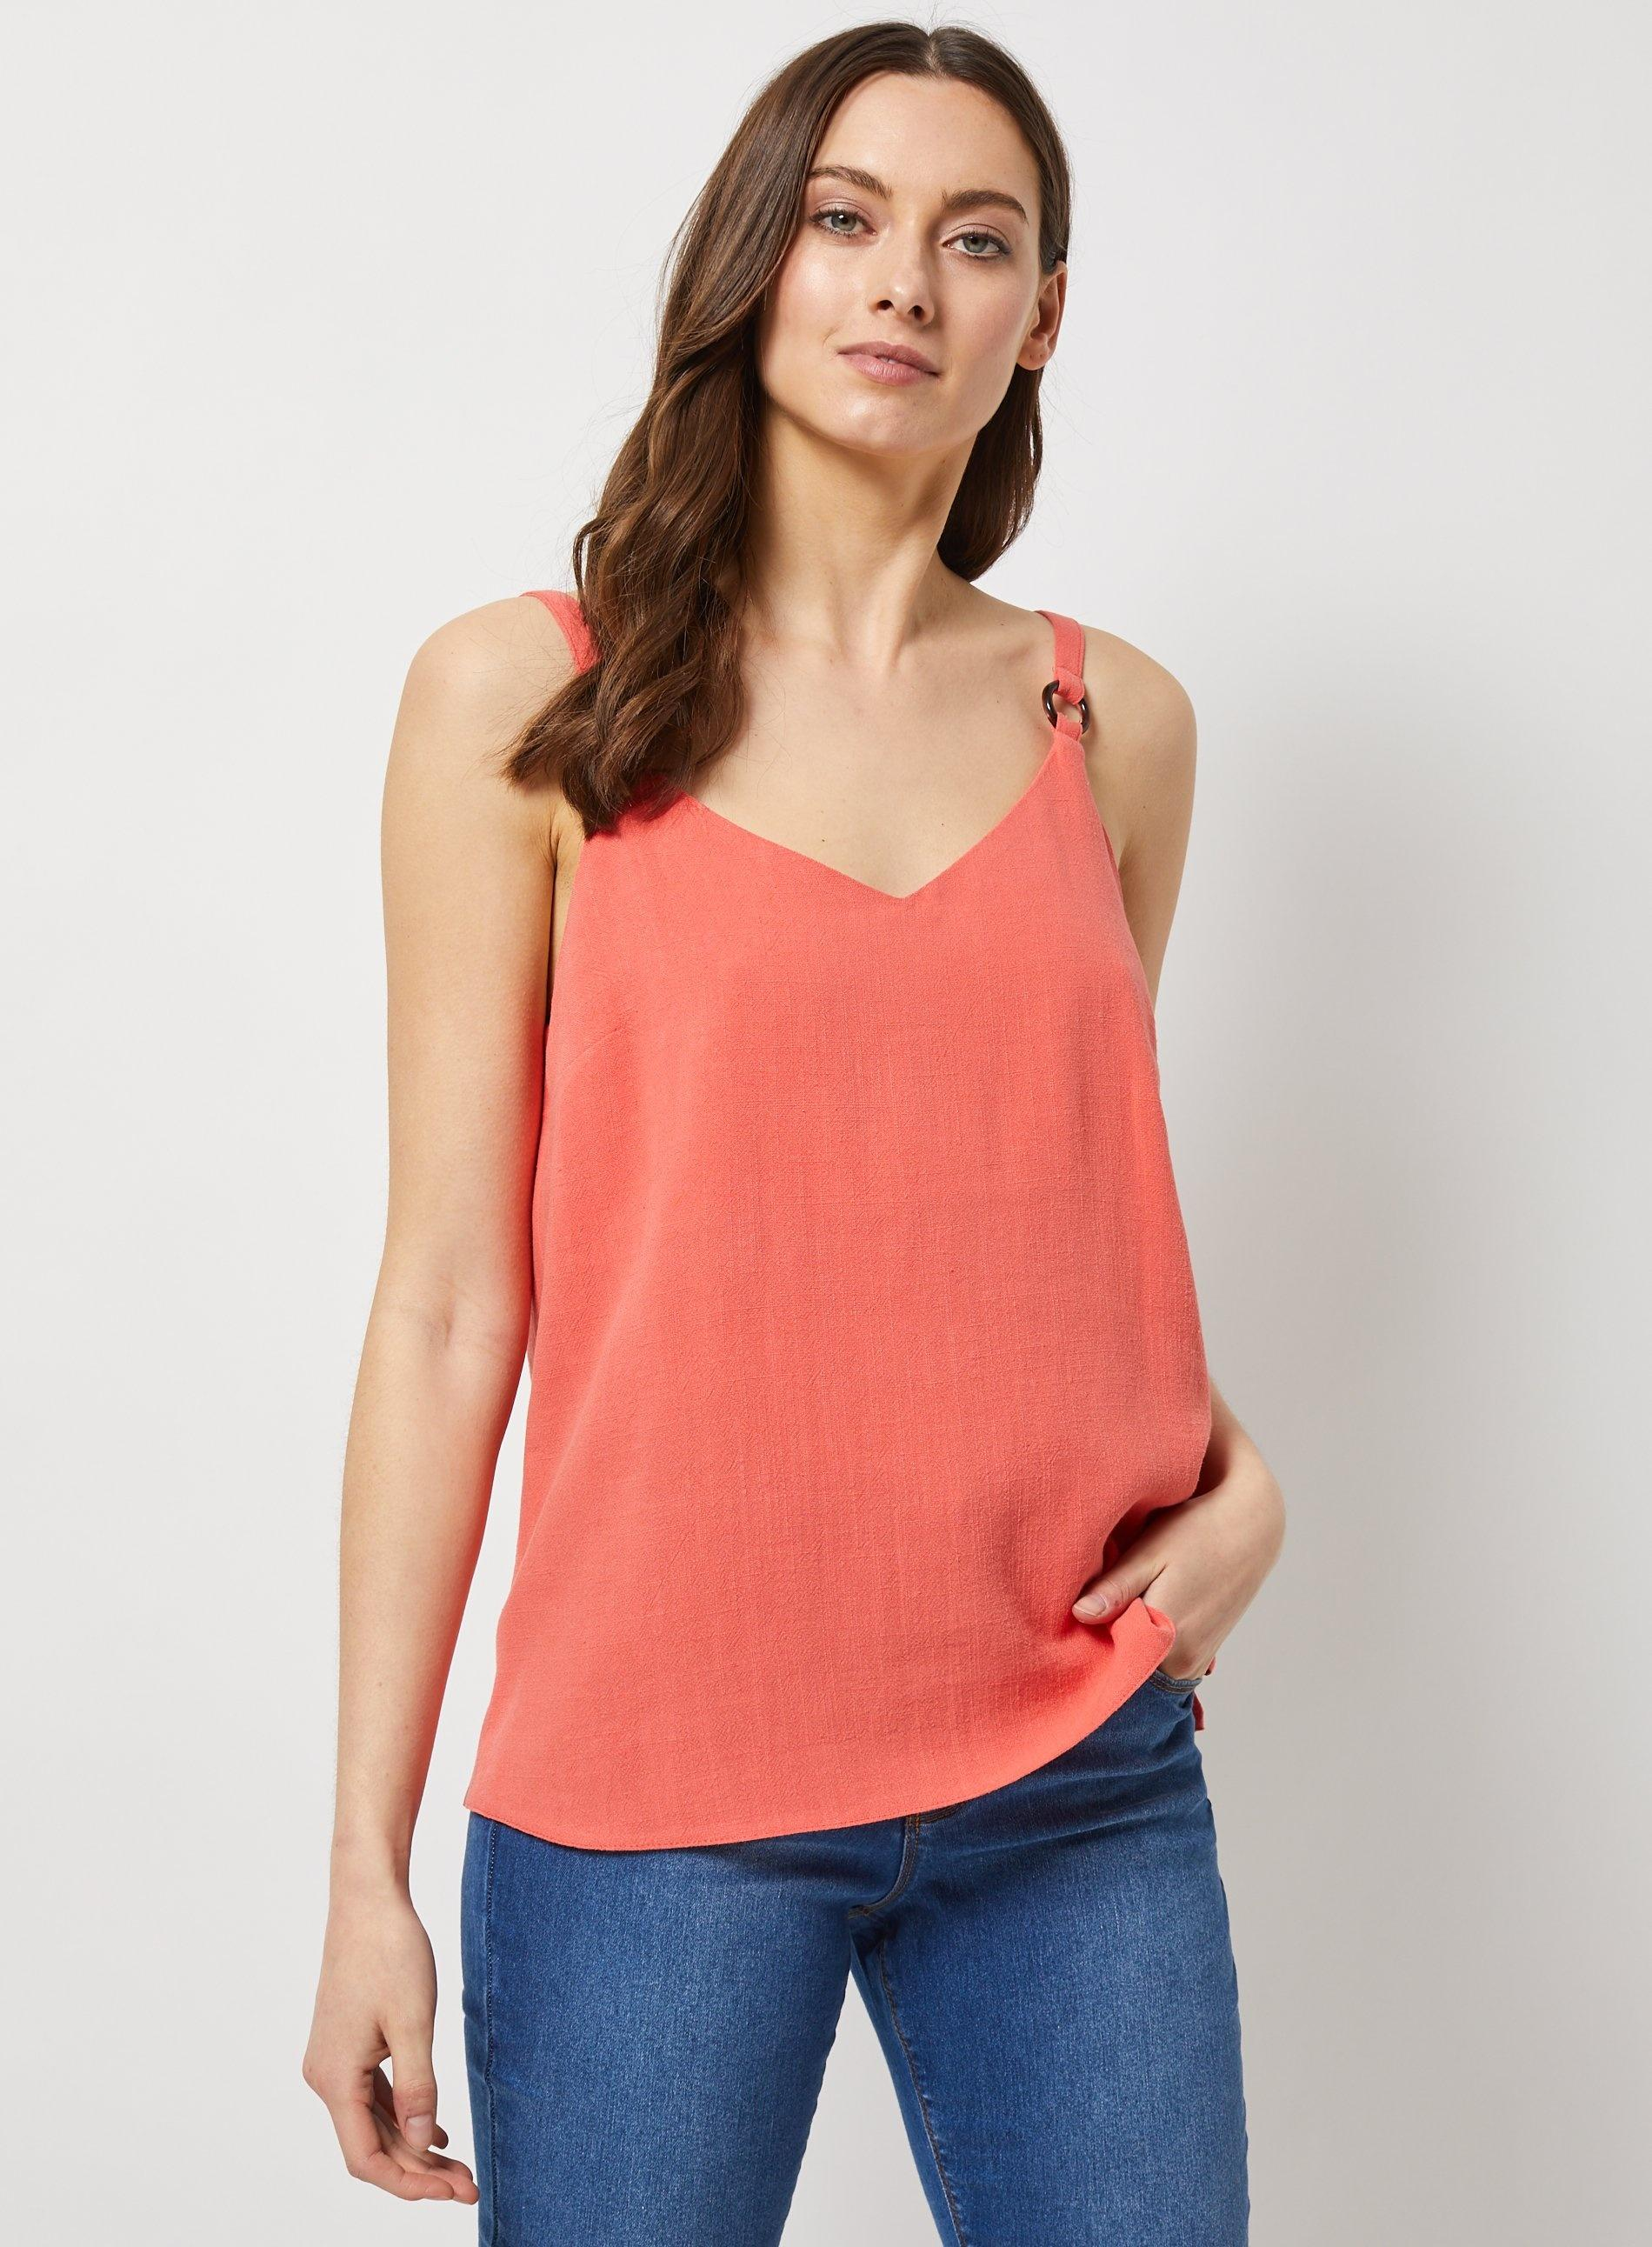 995eb6673da097 Dorothy Perkins - Pink Coral Ring Strap Camisole Top - Lyst. View fullscreen